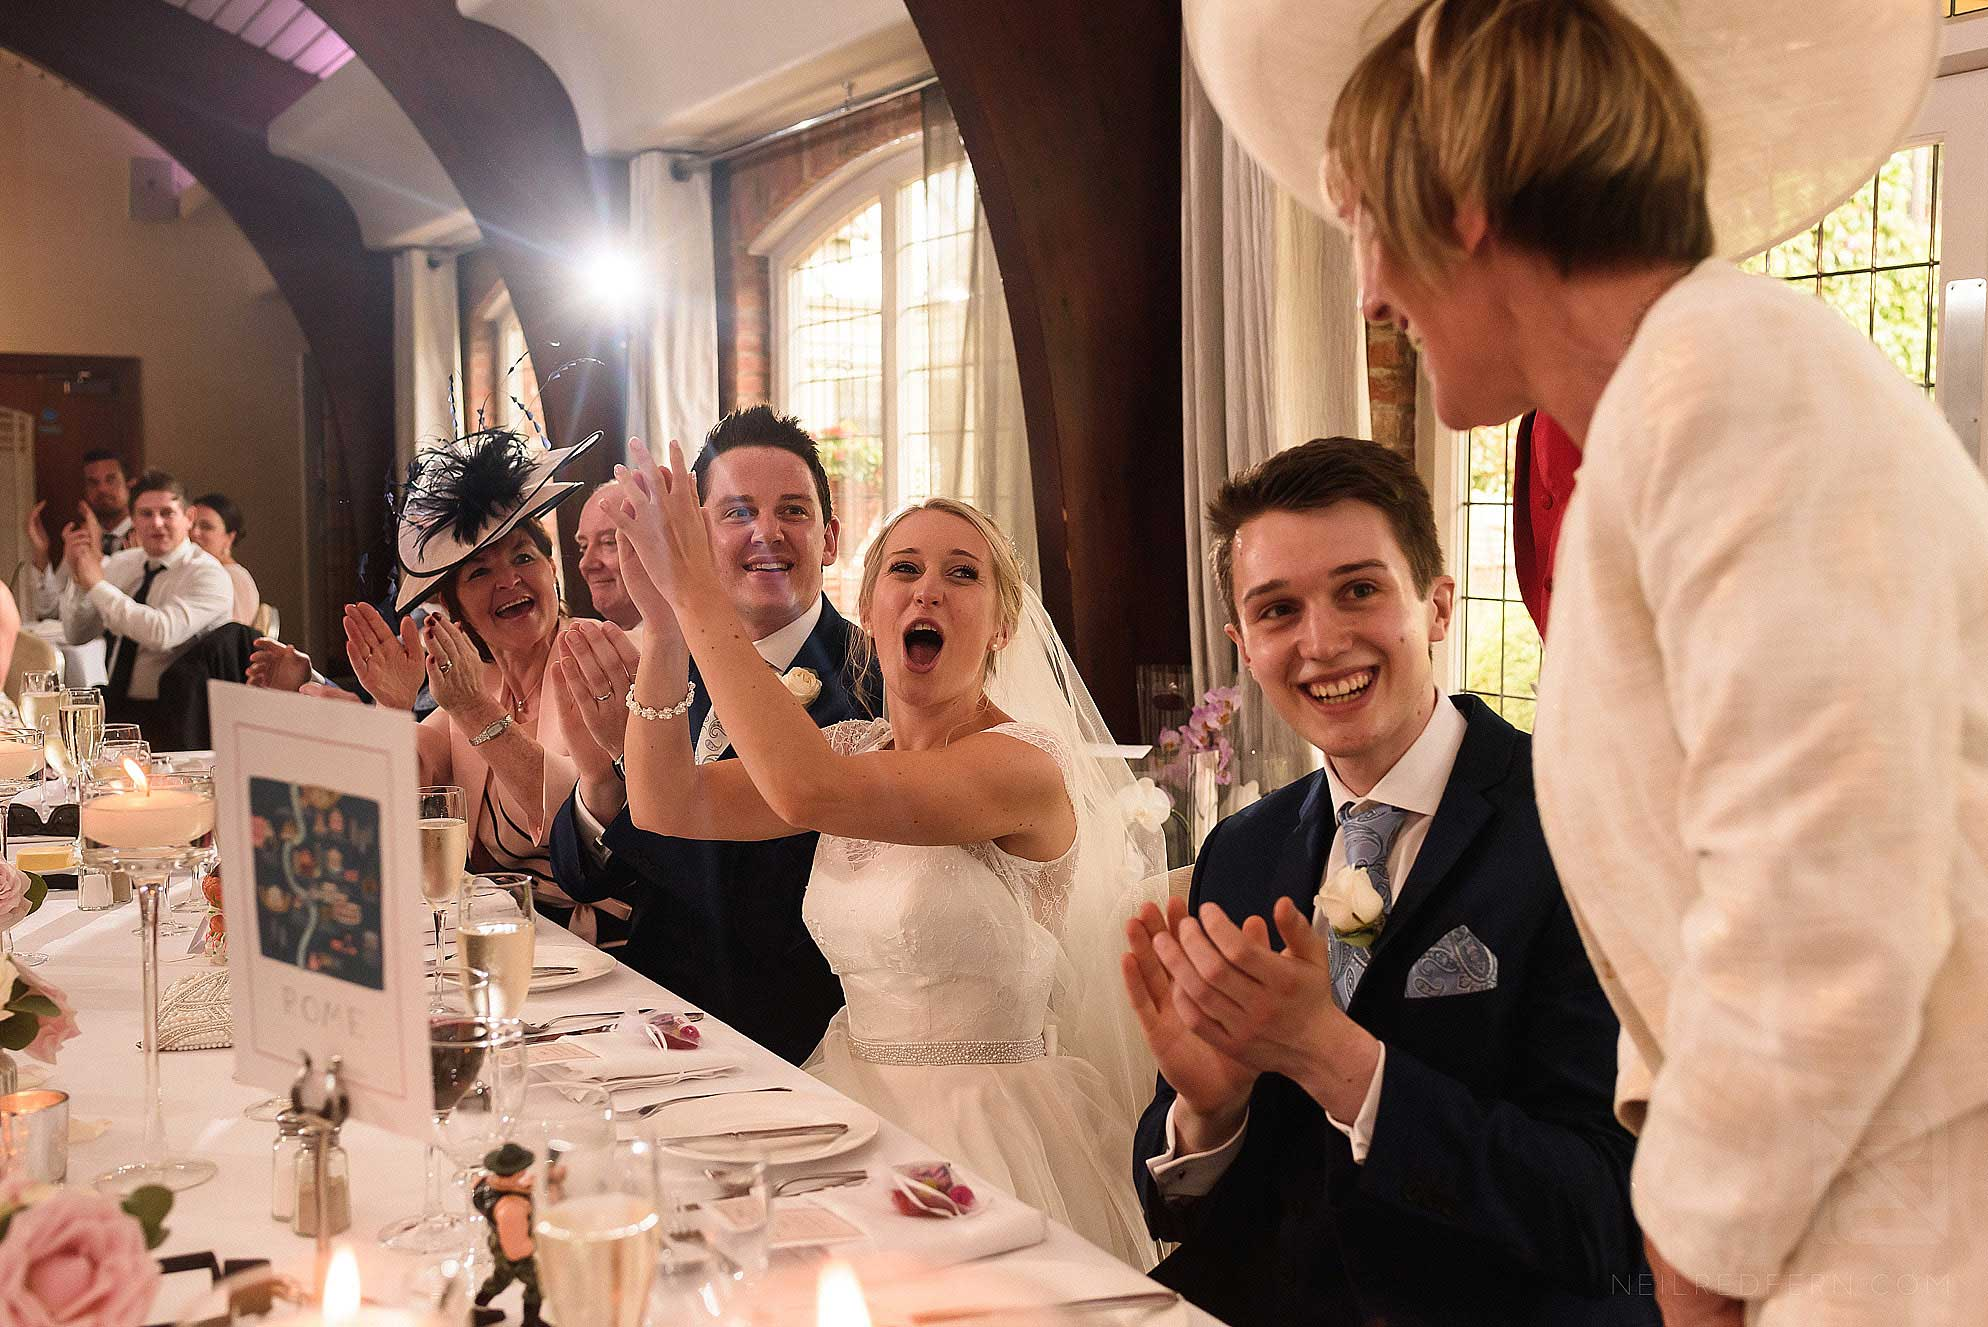 top table cheering during speeches